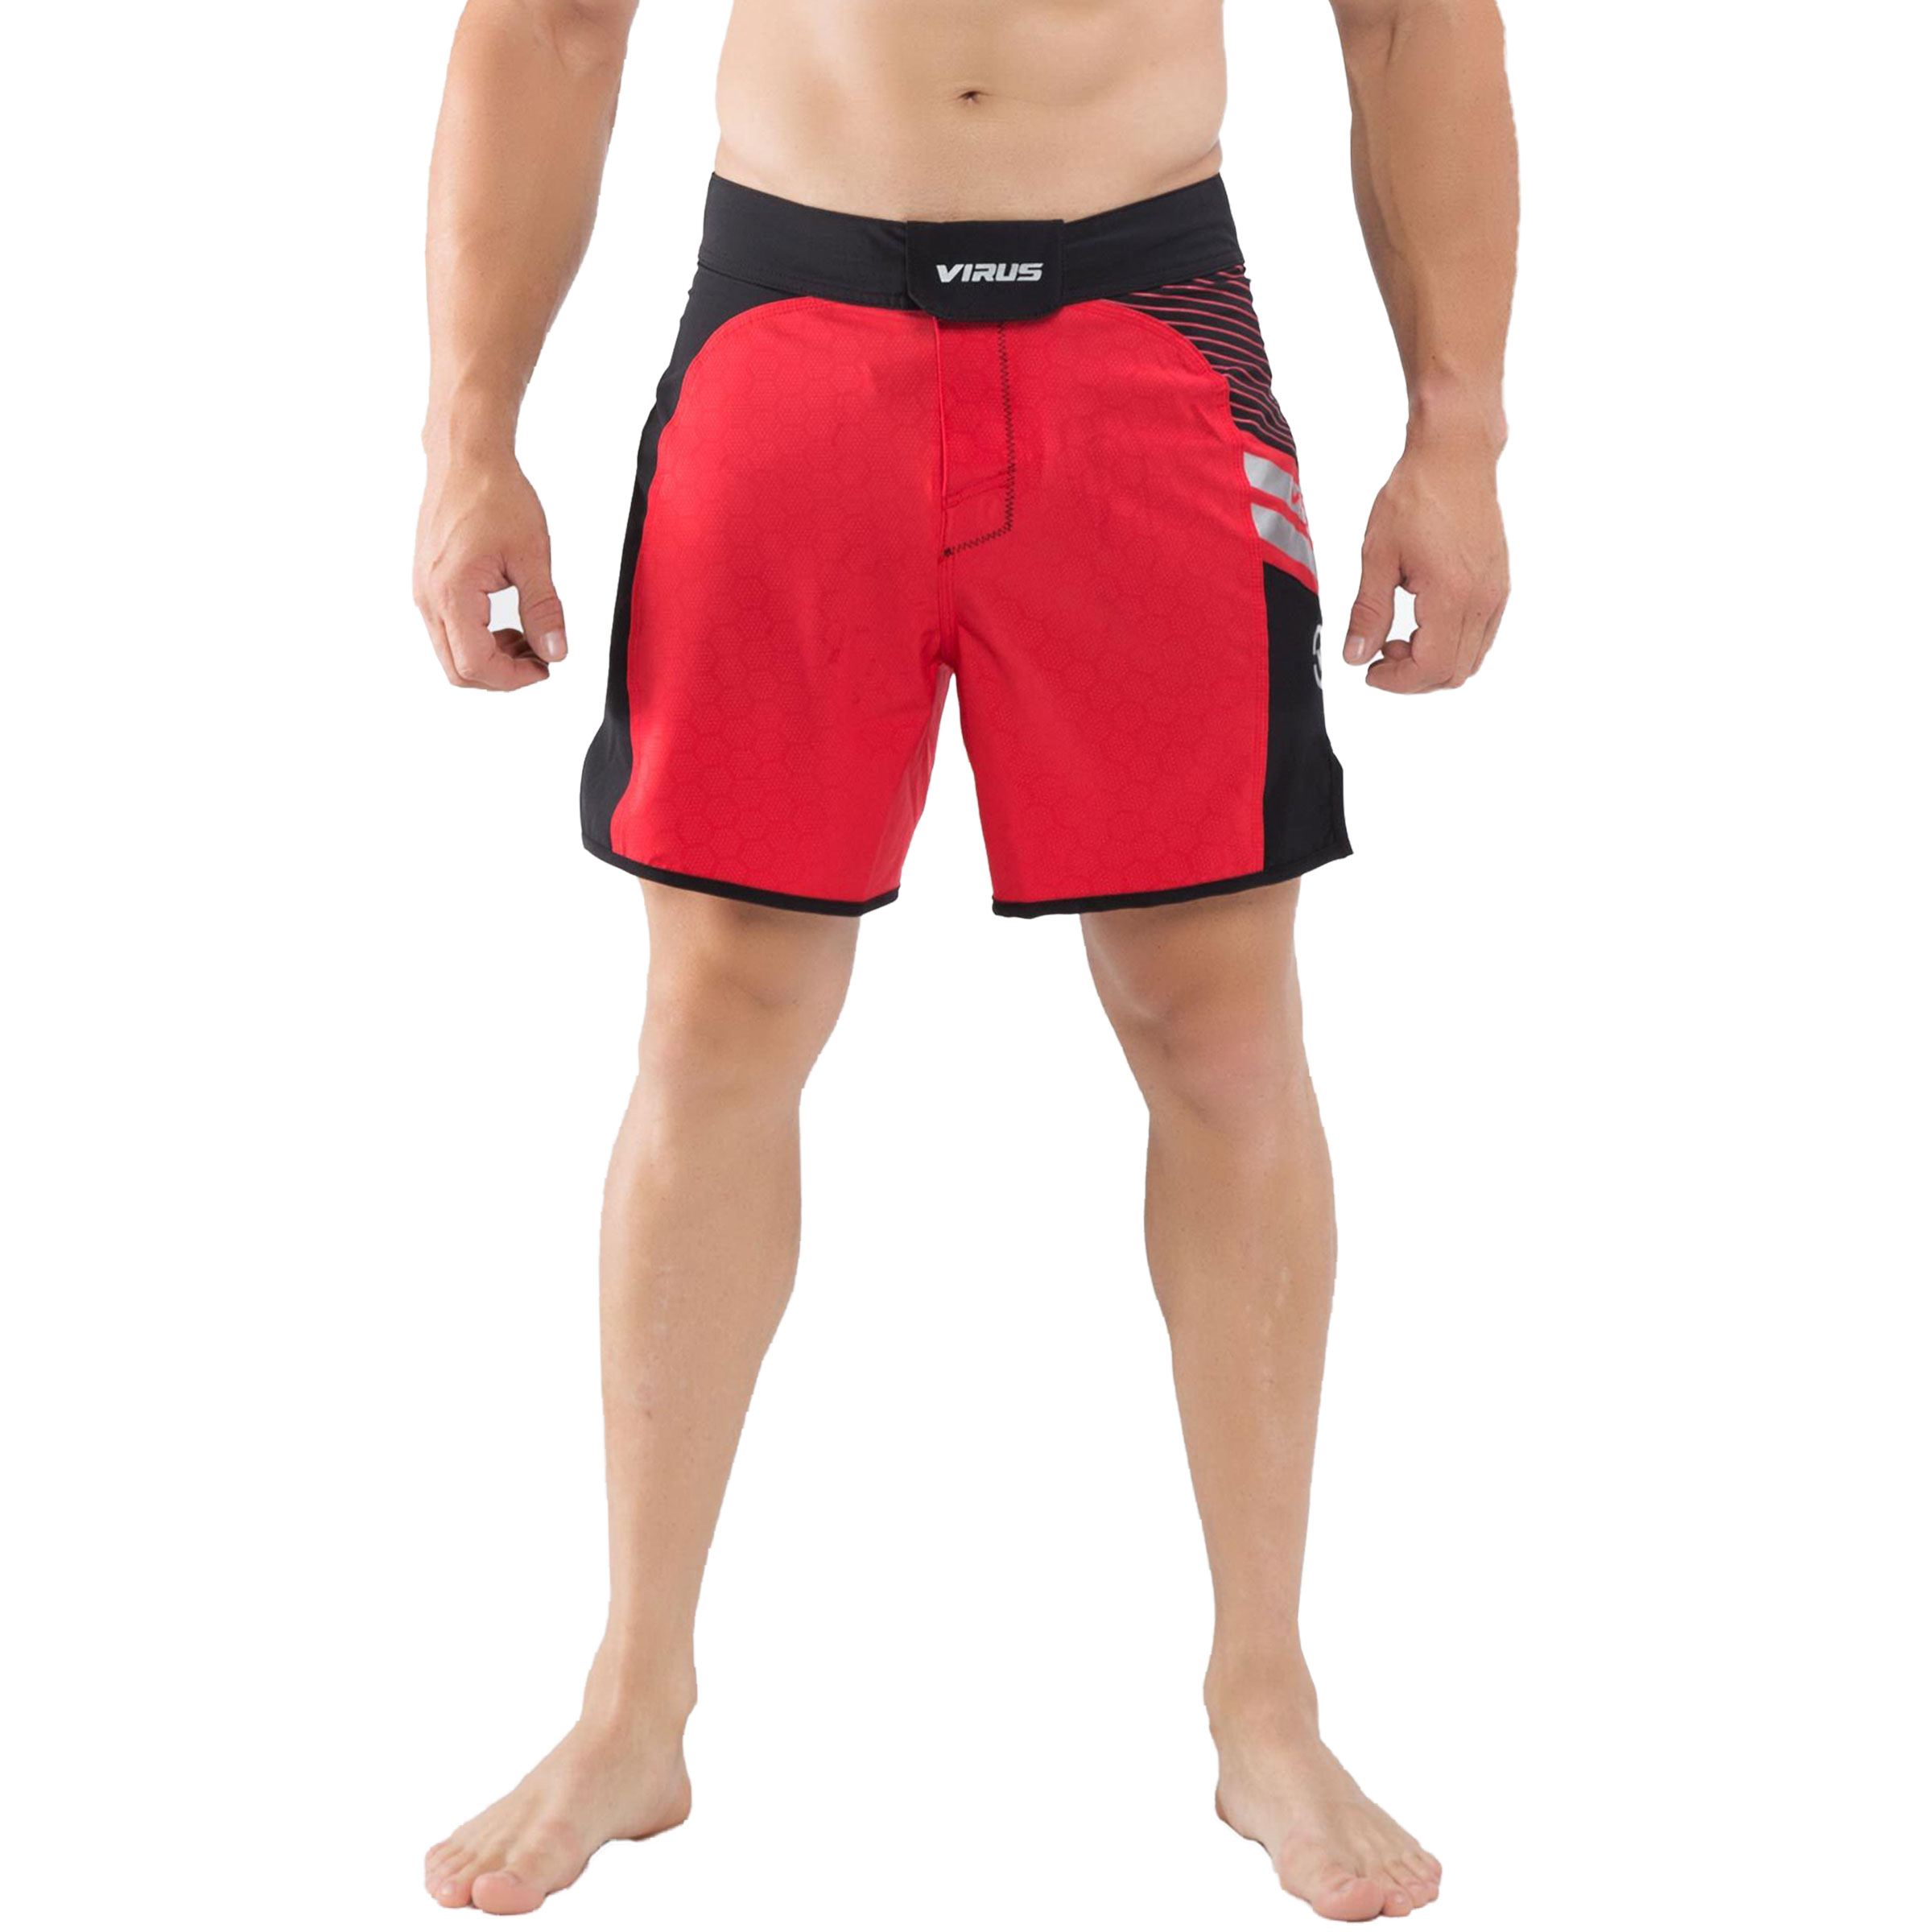 Virus Disaster Combat Shorts 2x-large Red/black | eBay